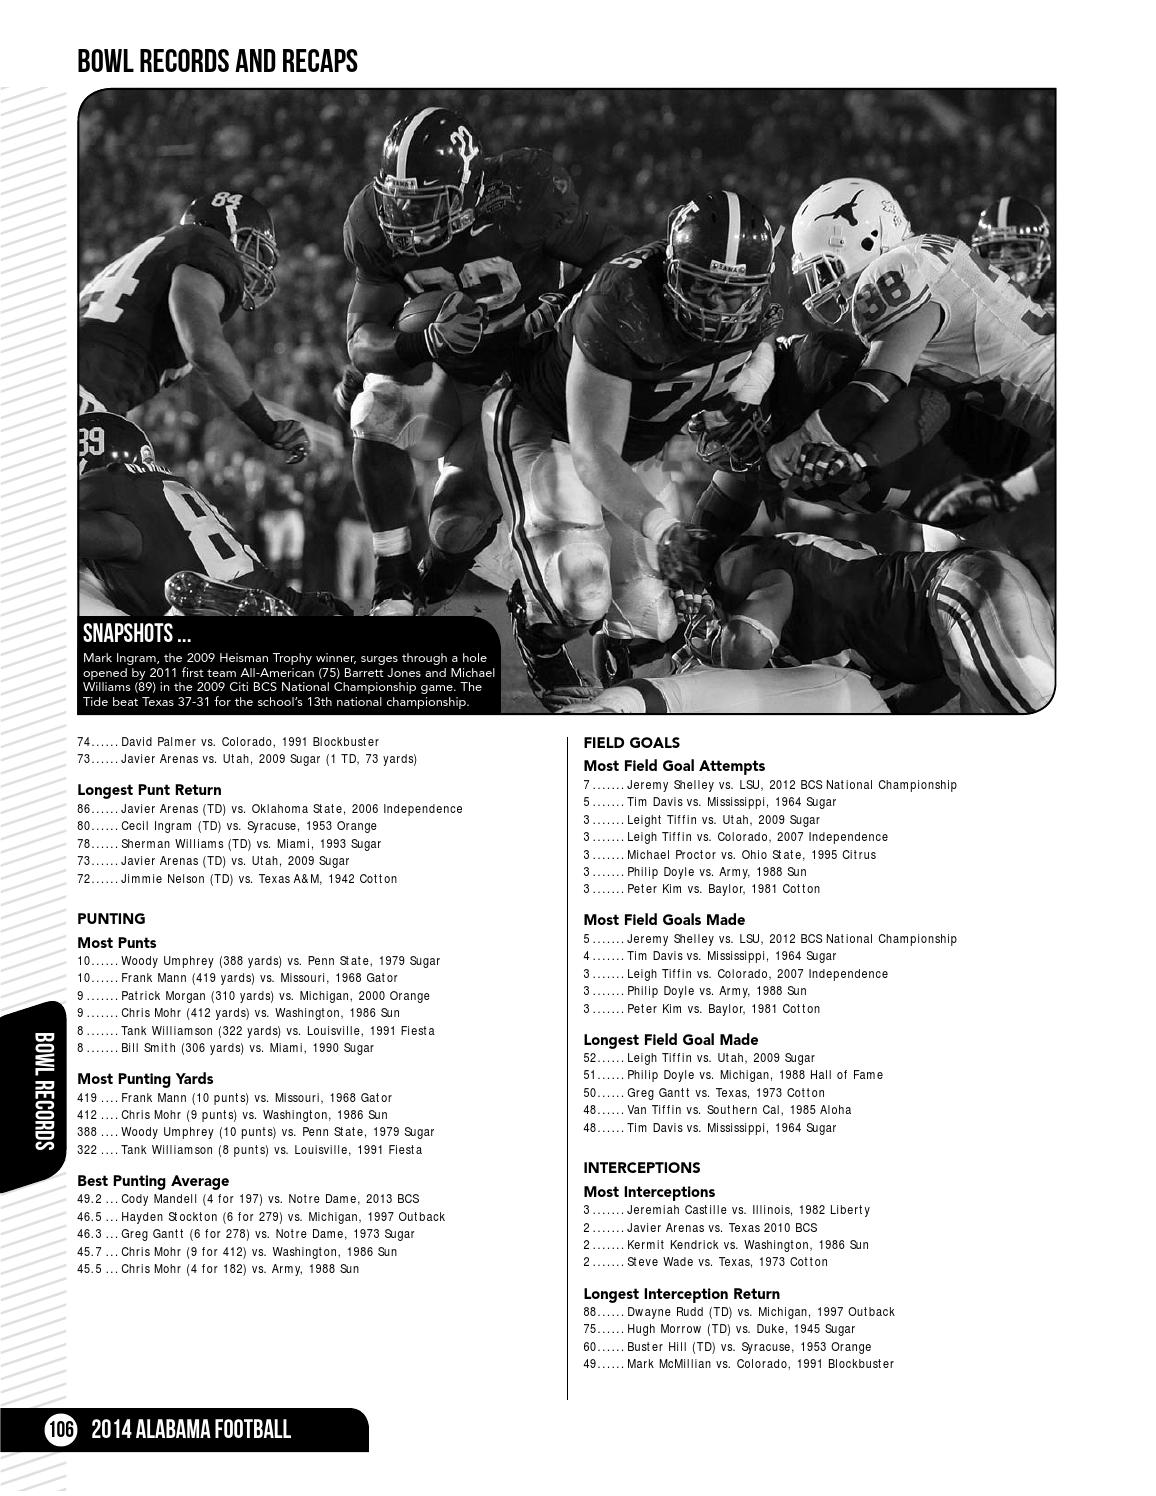 Sugar Bowl Media Guide By Alabama Crimson Tide